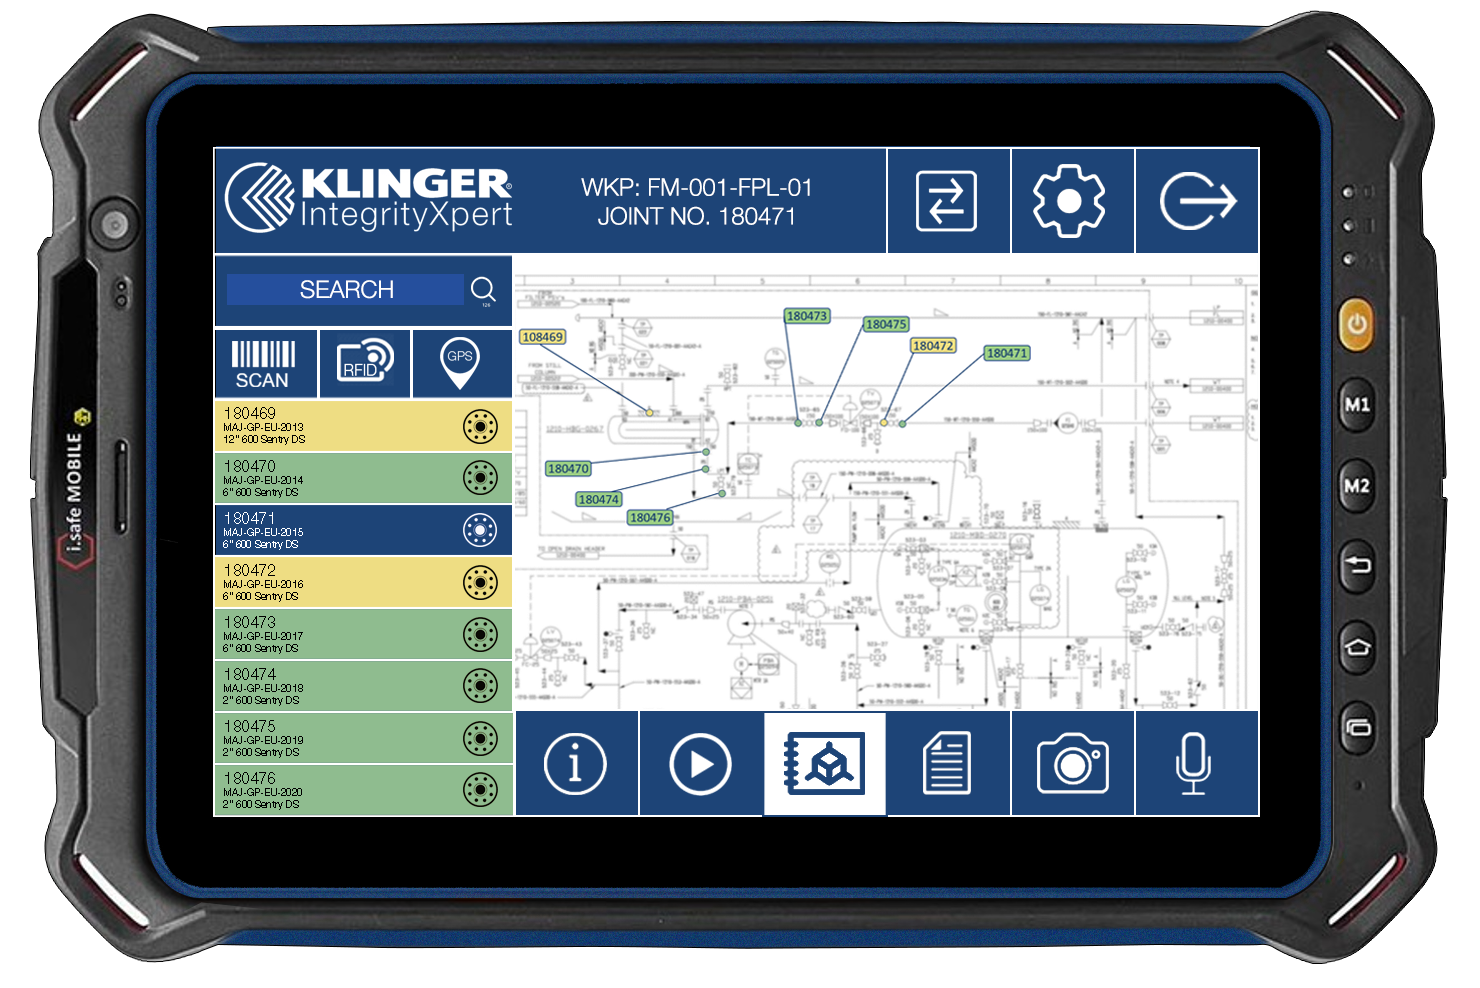 IntegrityXpert on a handheld device